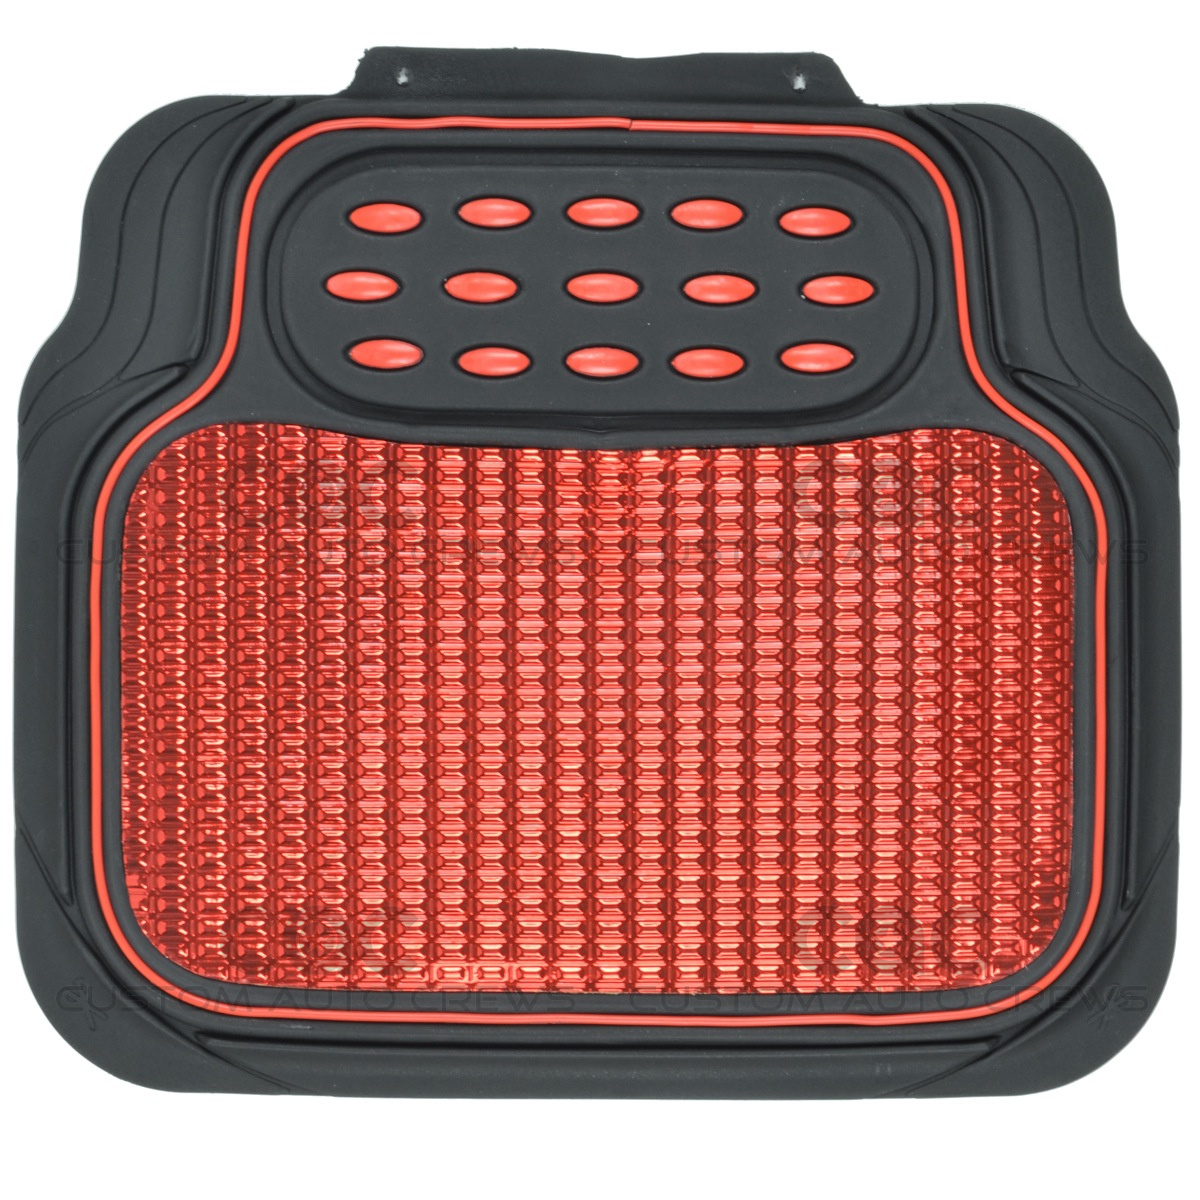 Rubber floor mats suv - Metallic Rubber Floor Mats Red For Car Suv Truck Black Trim To Fit 4 Piece 6 6 Of 8